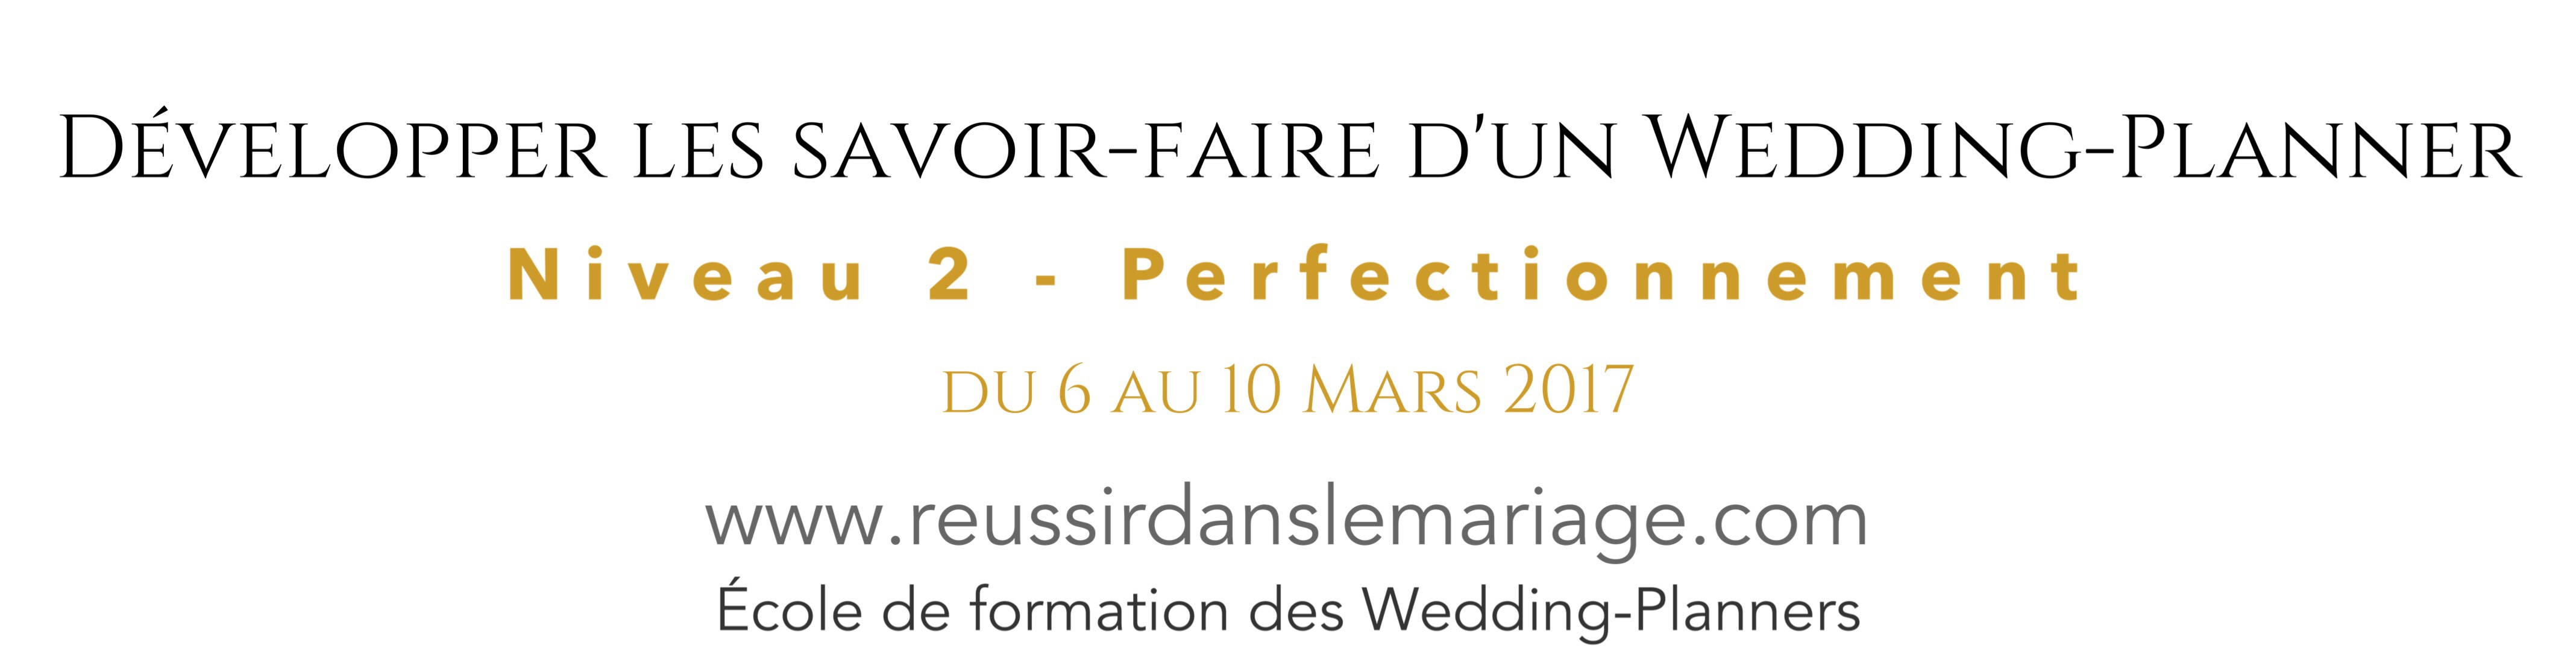 savoir faire wedding planner